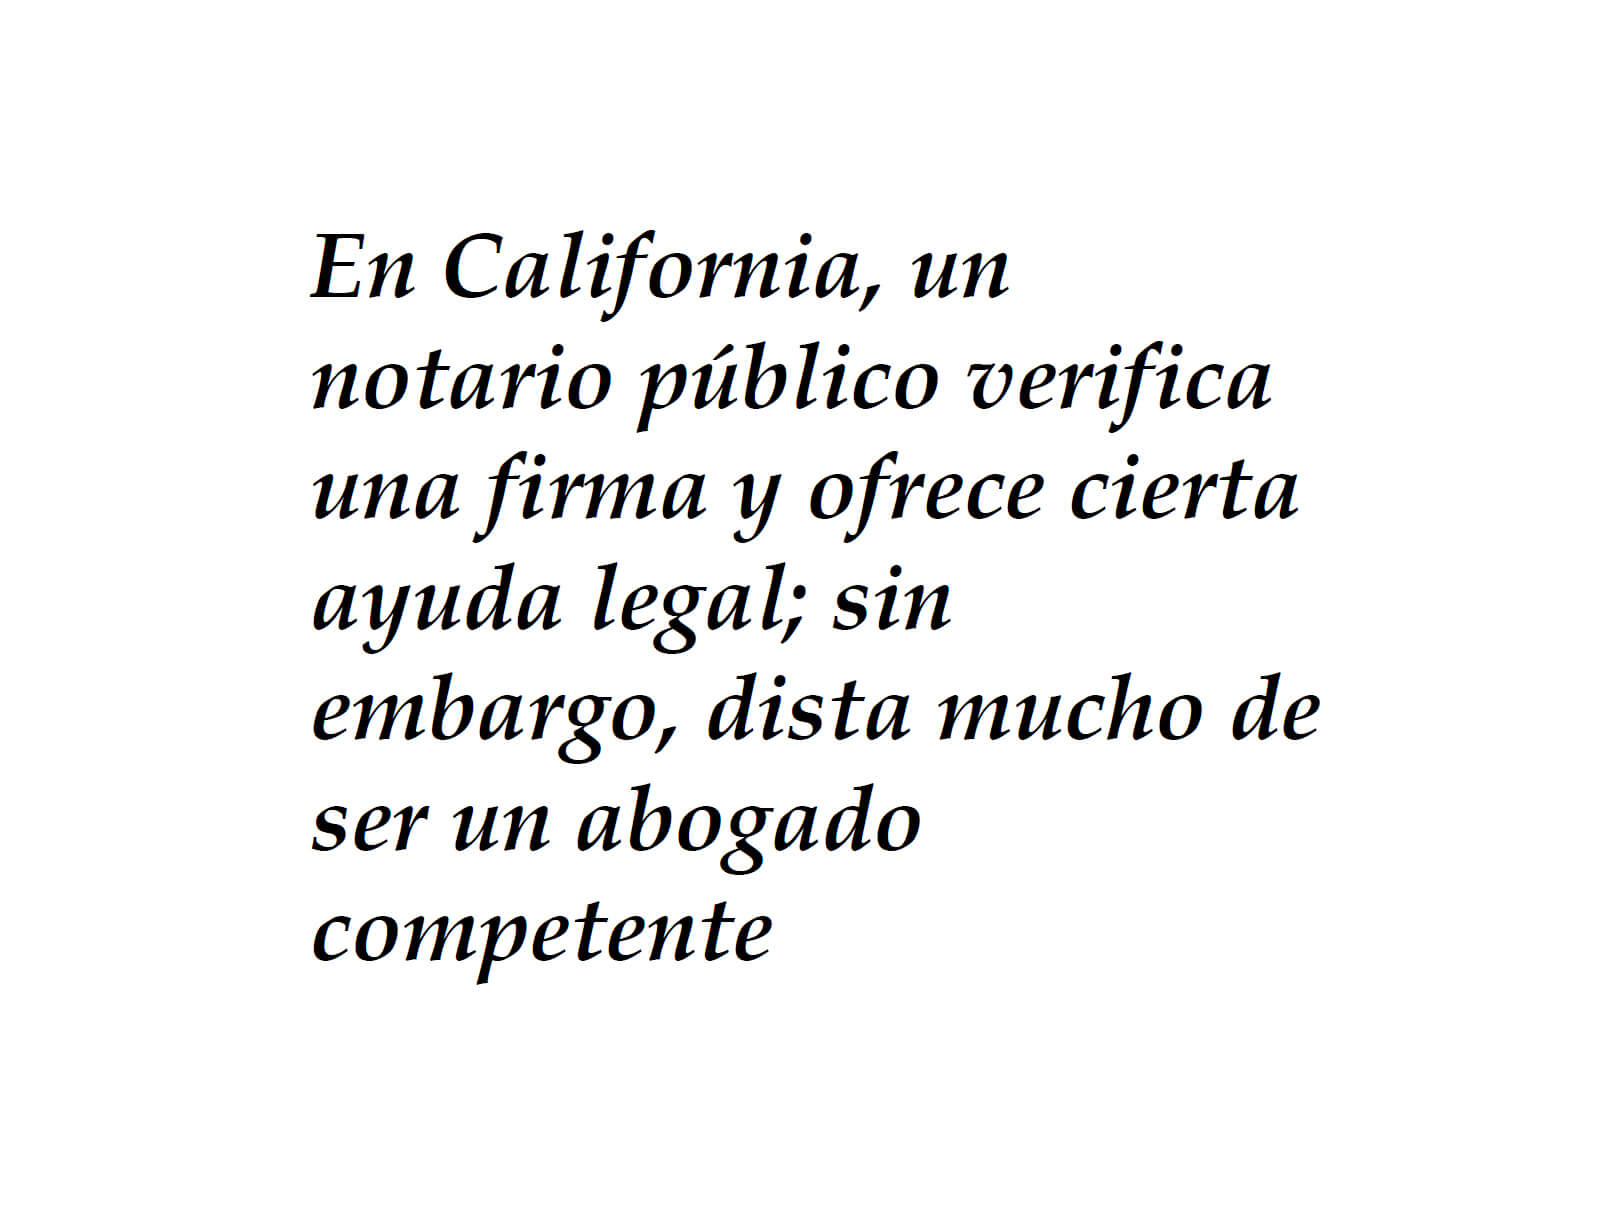 Ayuda legal incompetente